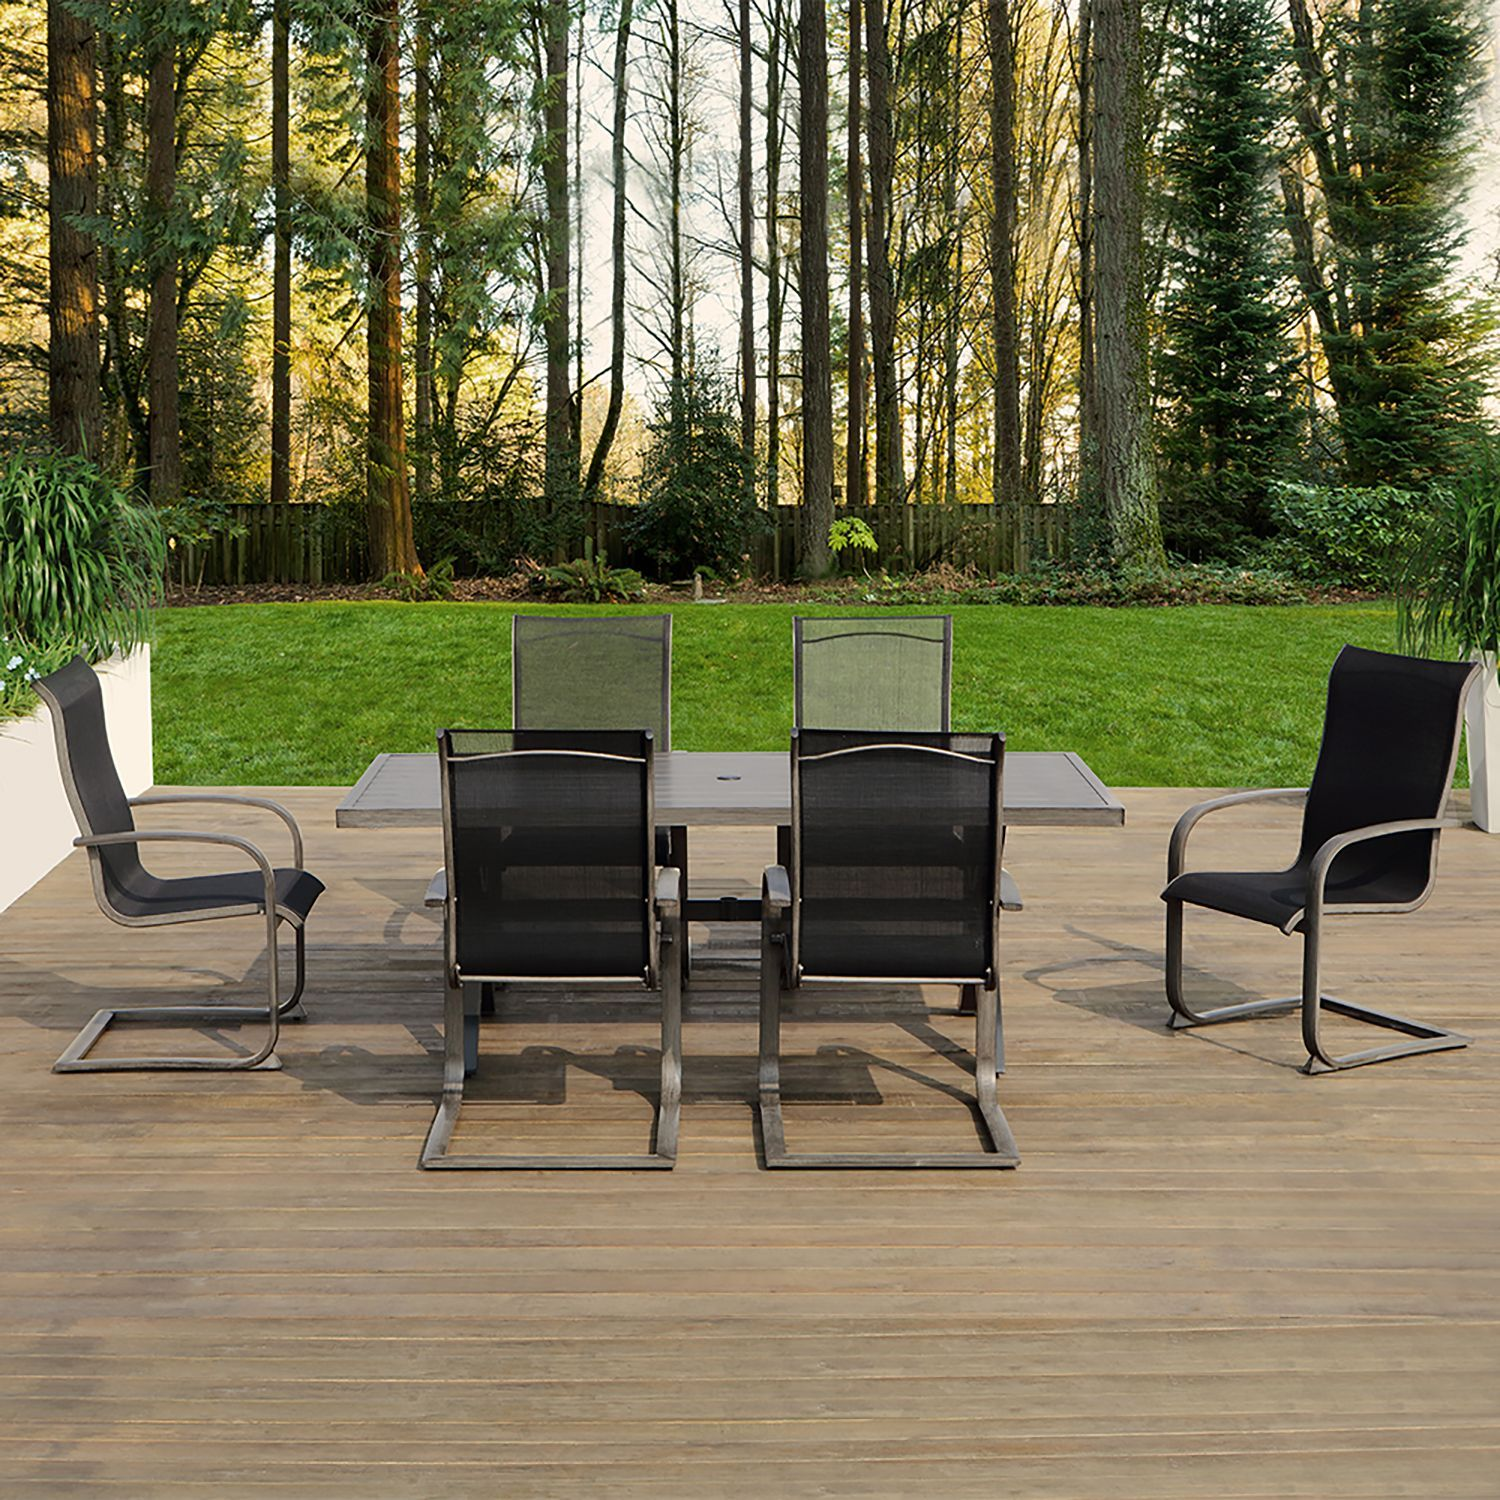 OVE Mulholland 7 Piece Outdoor Dining Set